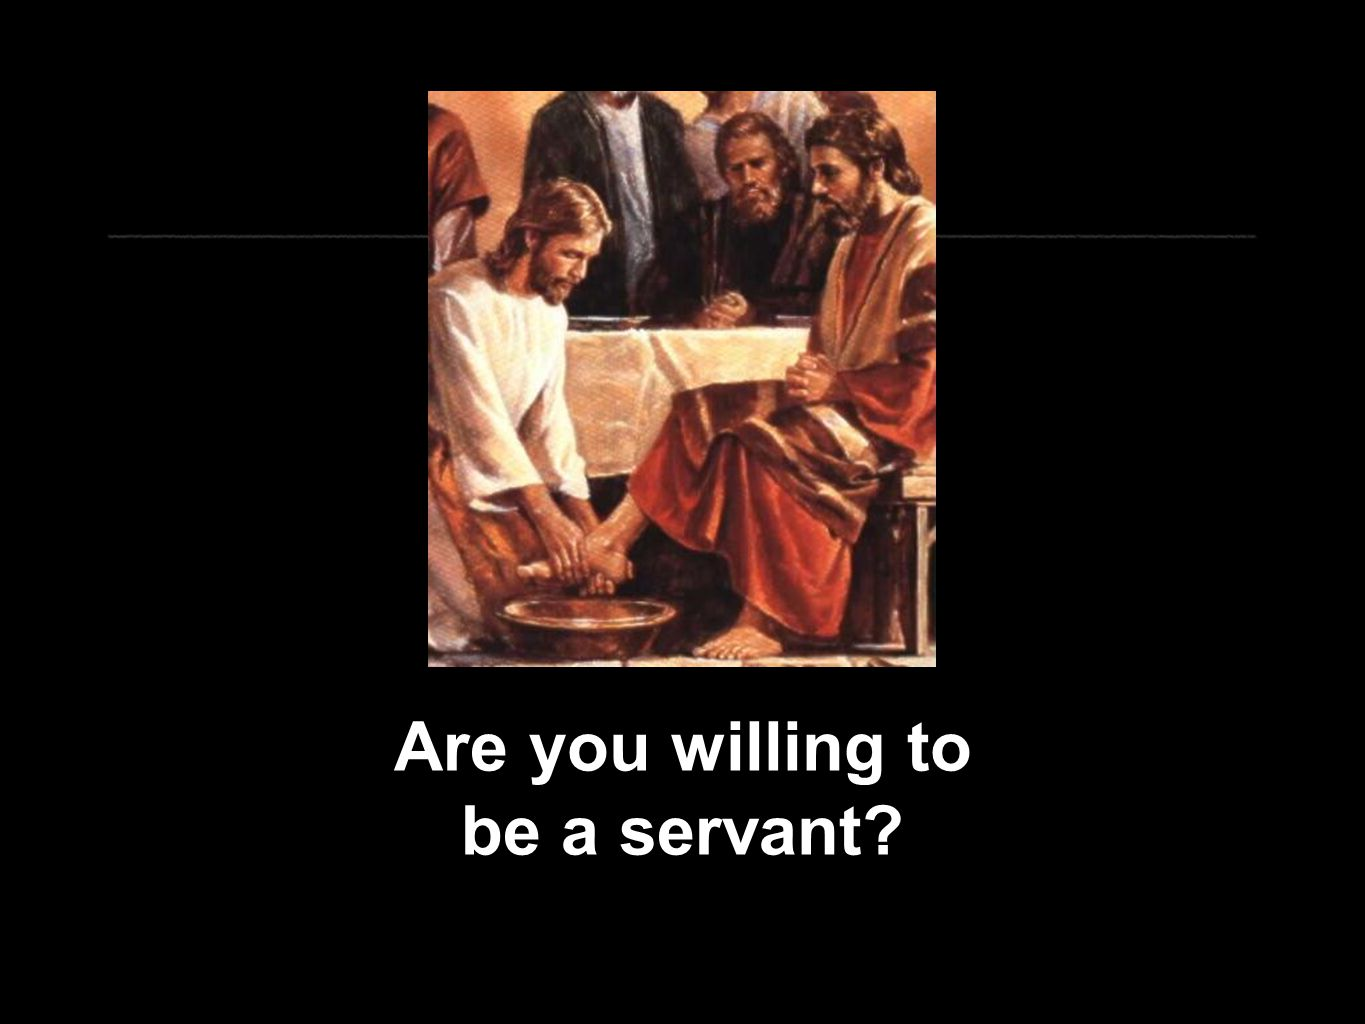 Are you willing to be a servant